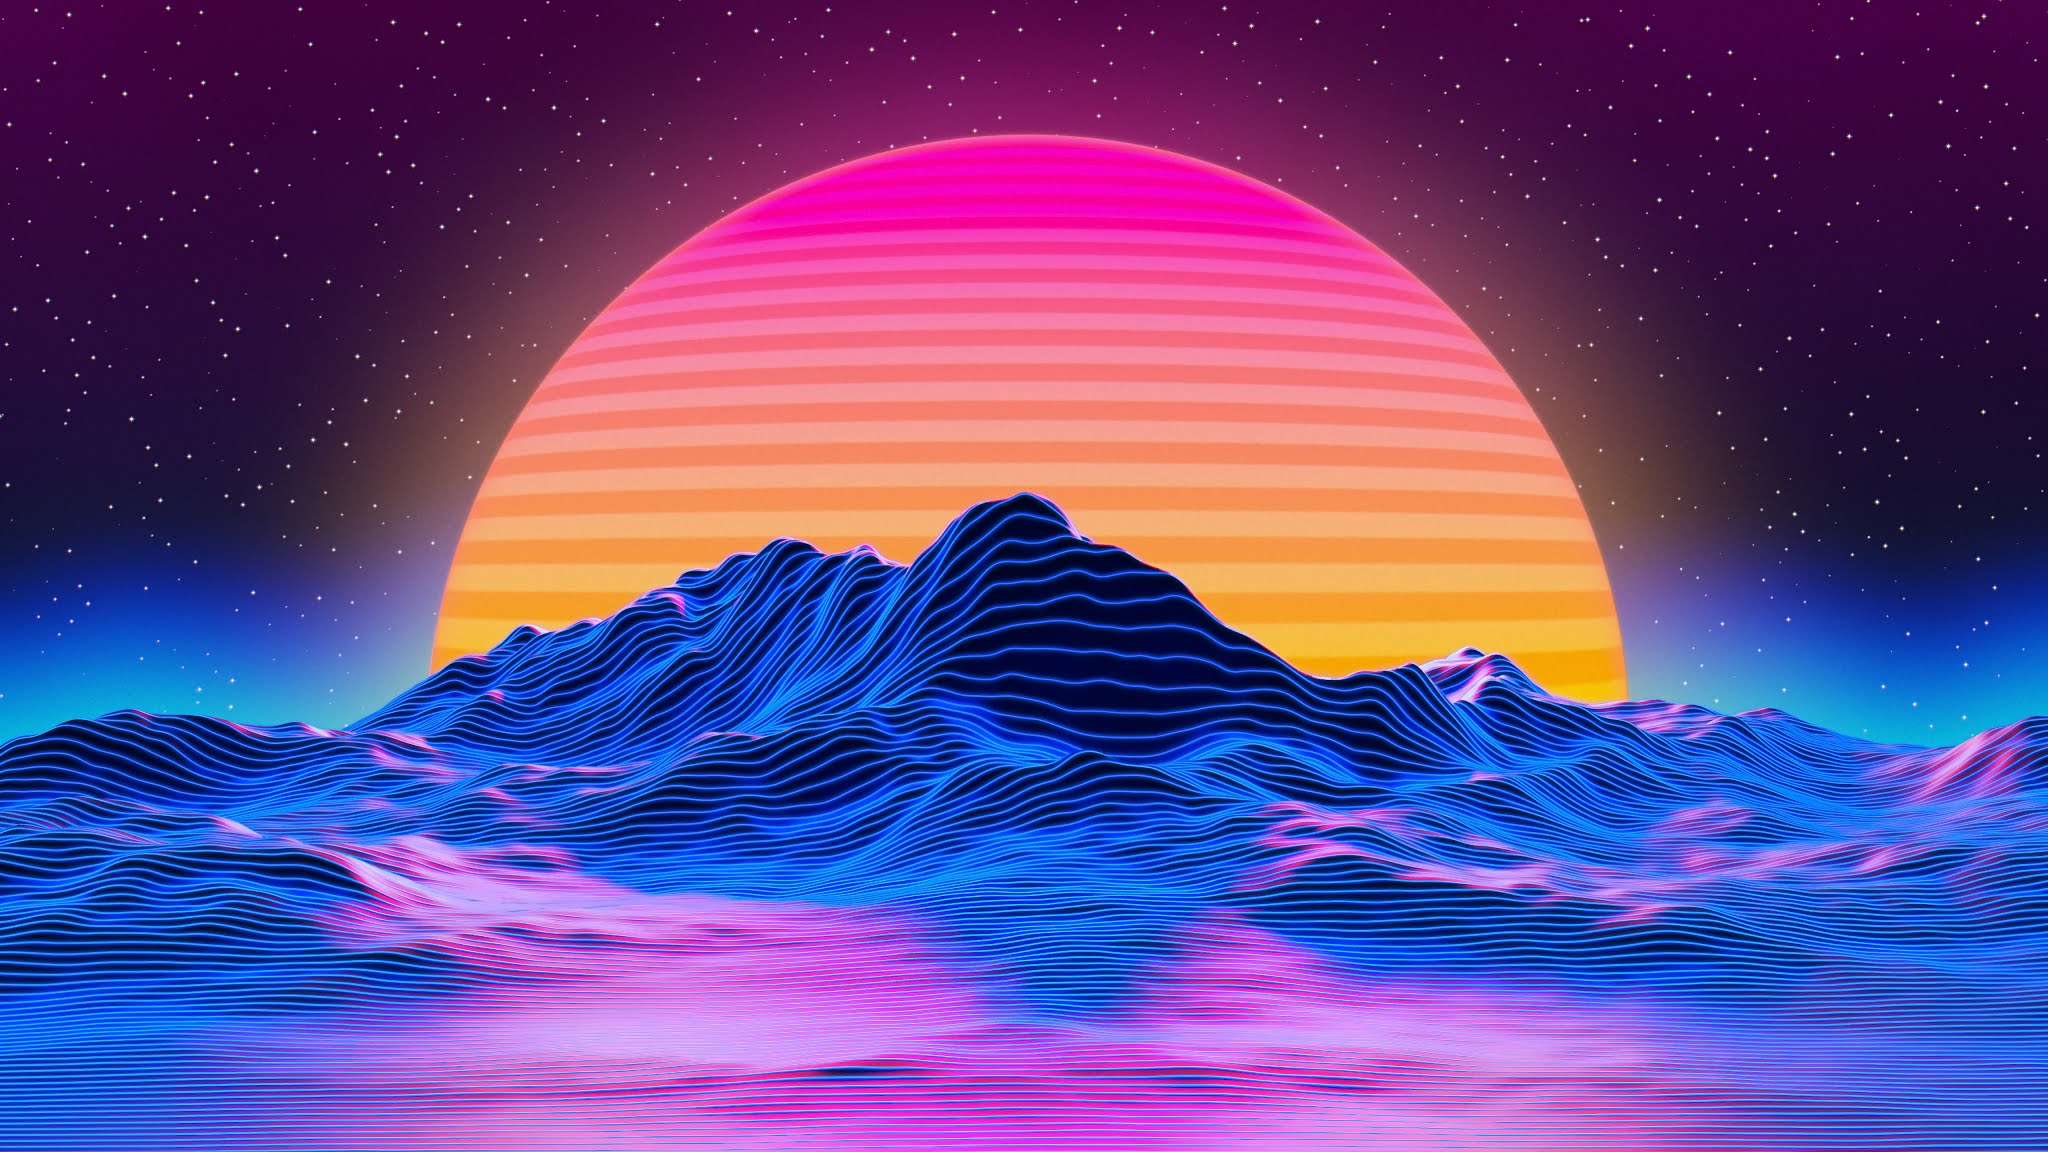 Retrowave mountains of lines stars and sun 5k Ultra HD Wallpaper